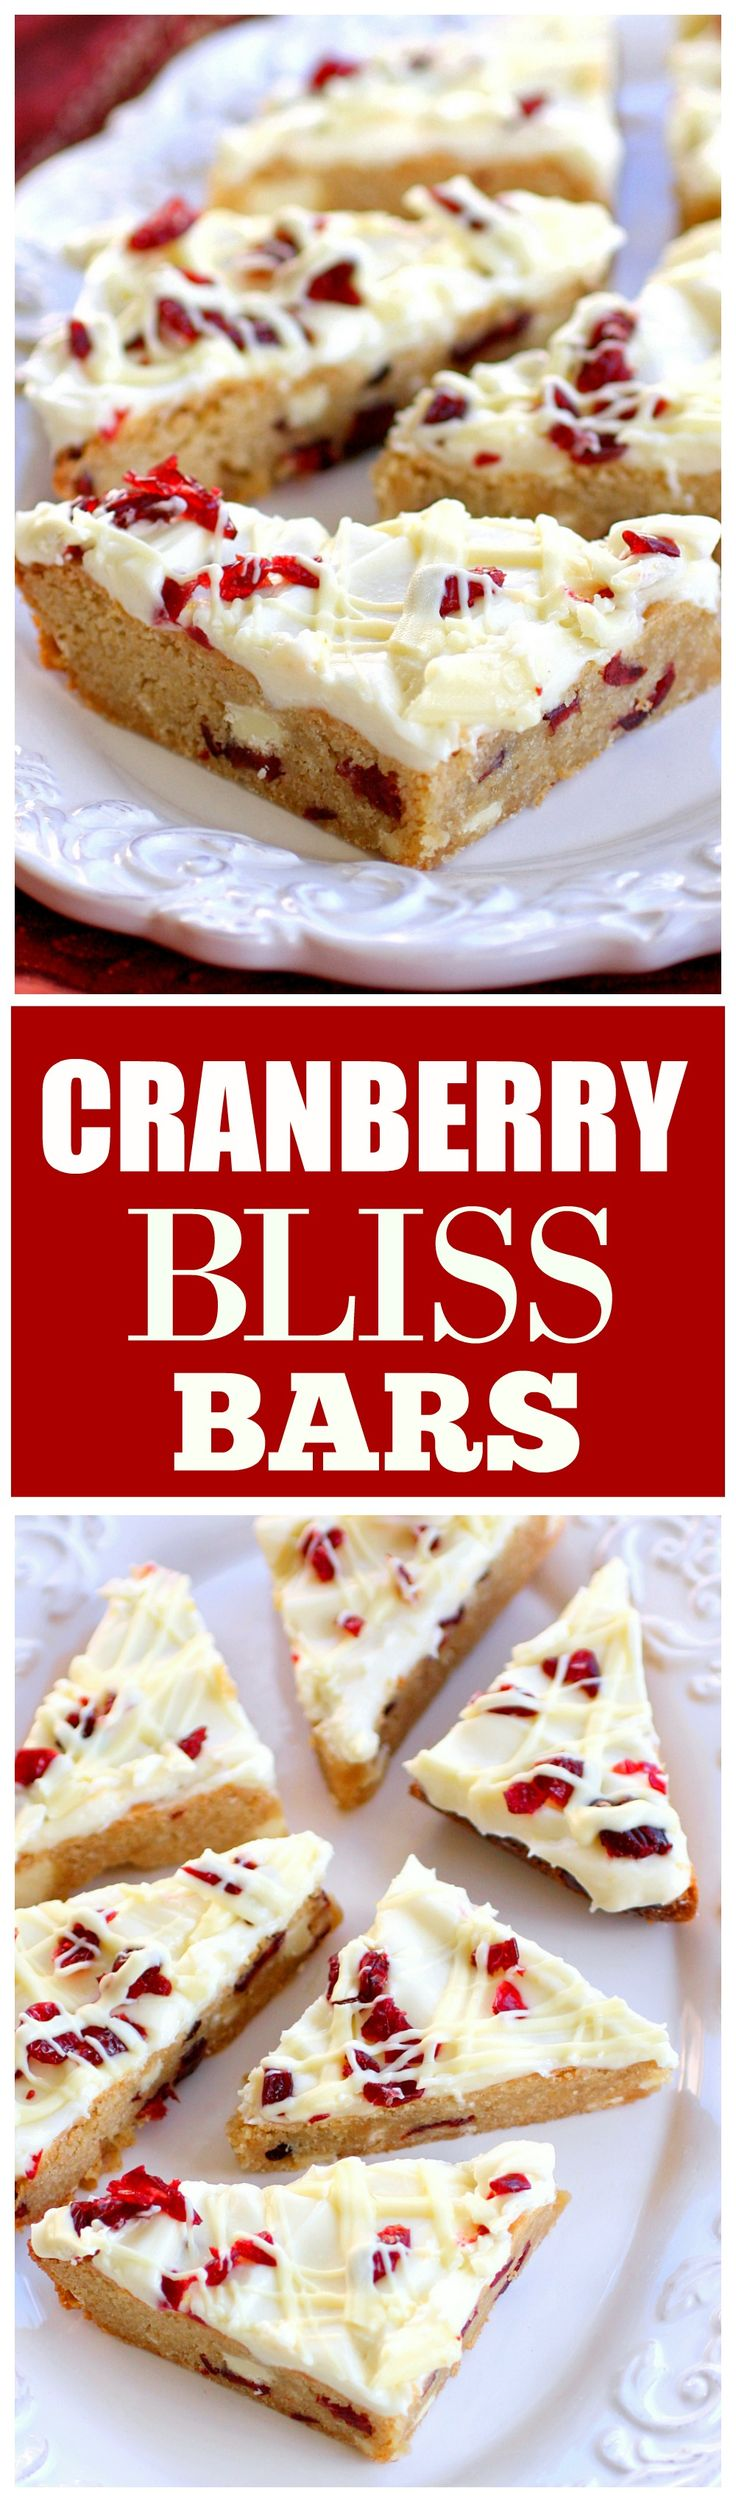 HOLIDAY BOARD: Cranberry Bliss Bars